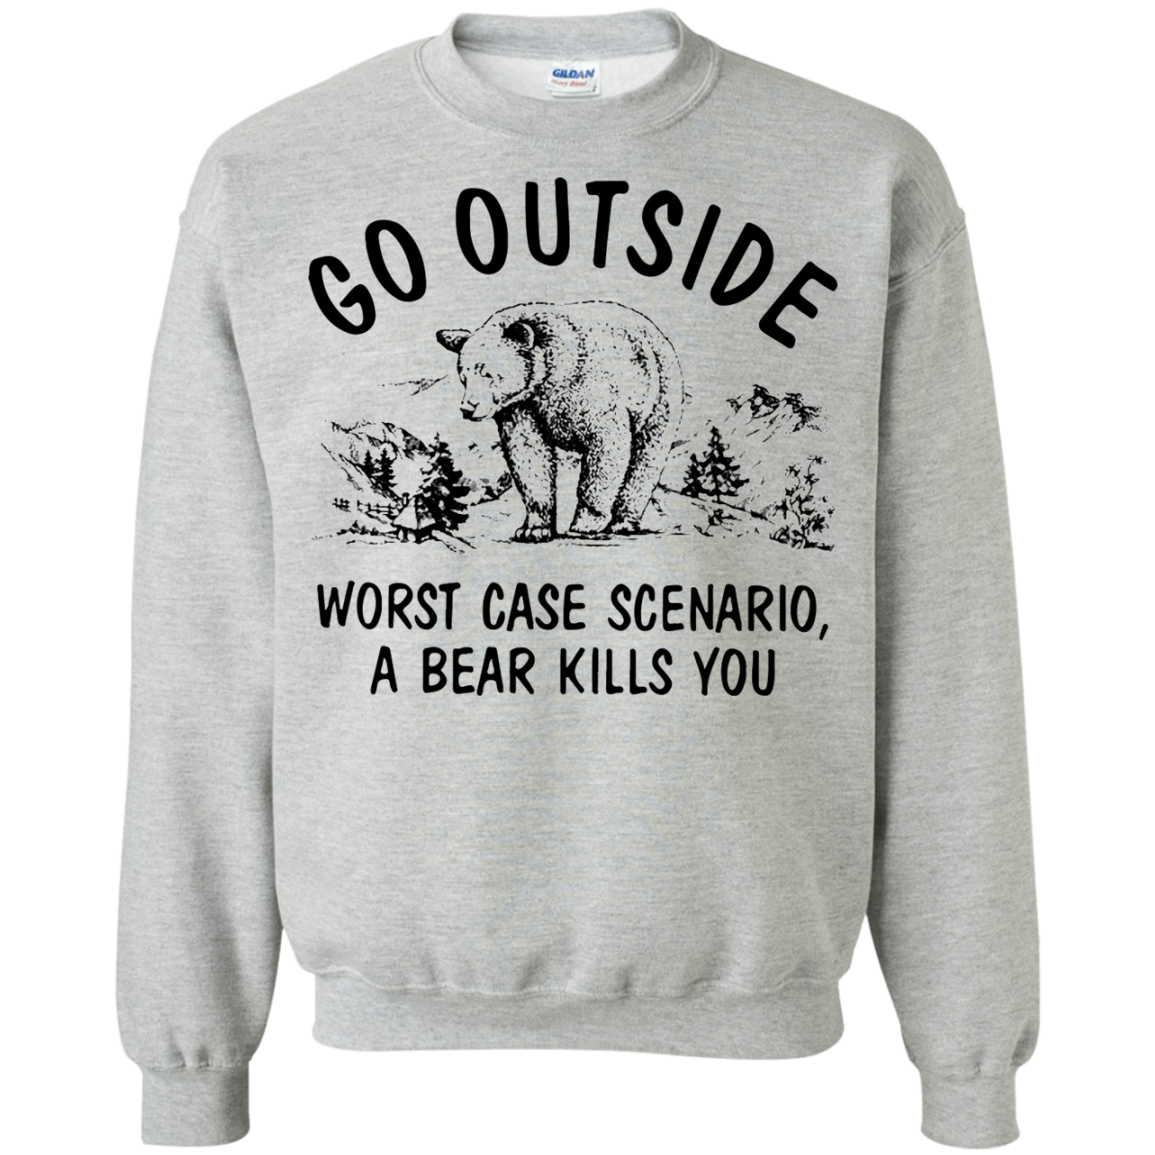 Bear T shirts Dog Outside Worst Case Scenario Hoodies Sweatshirts TH